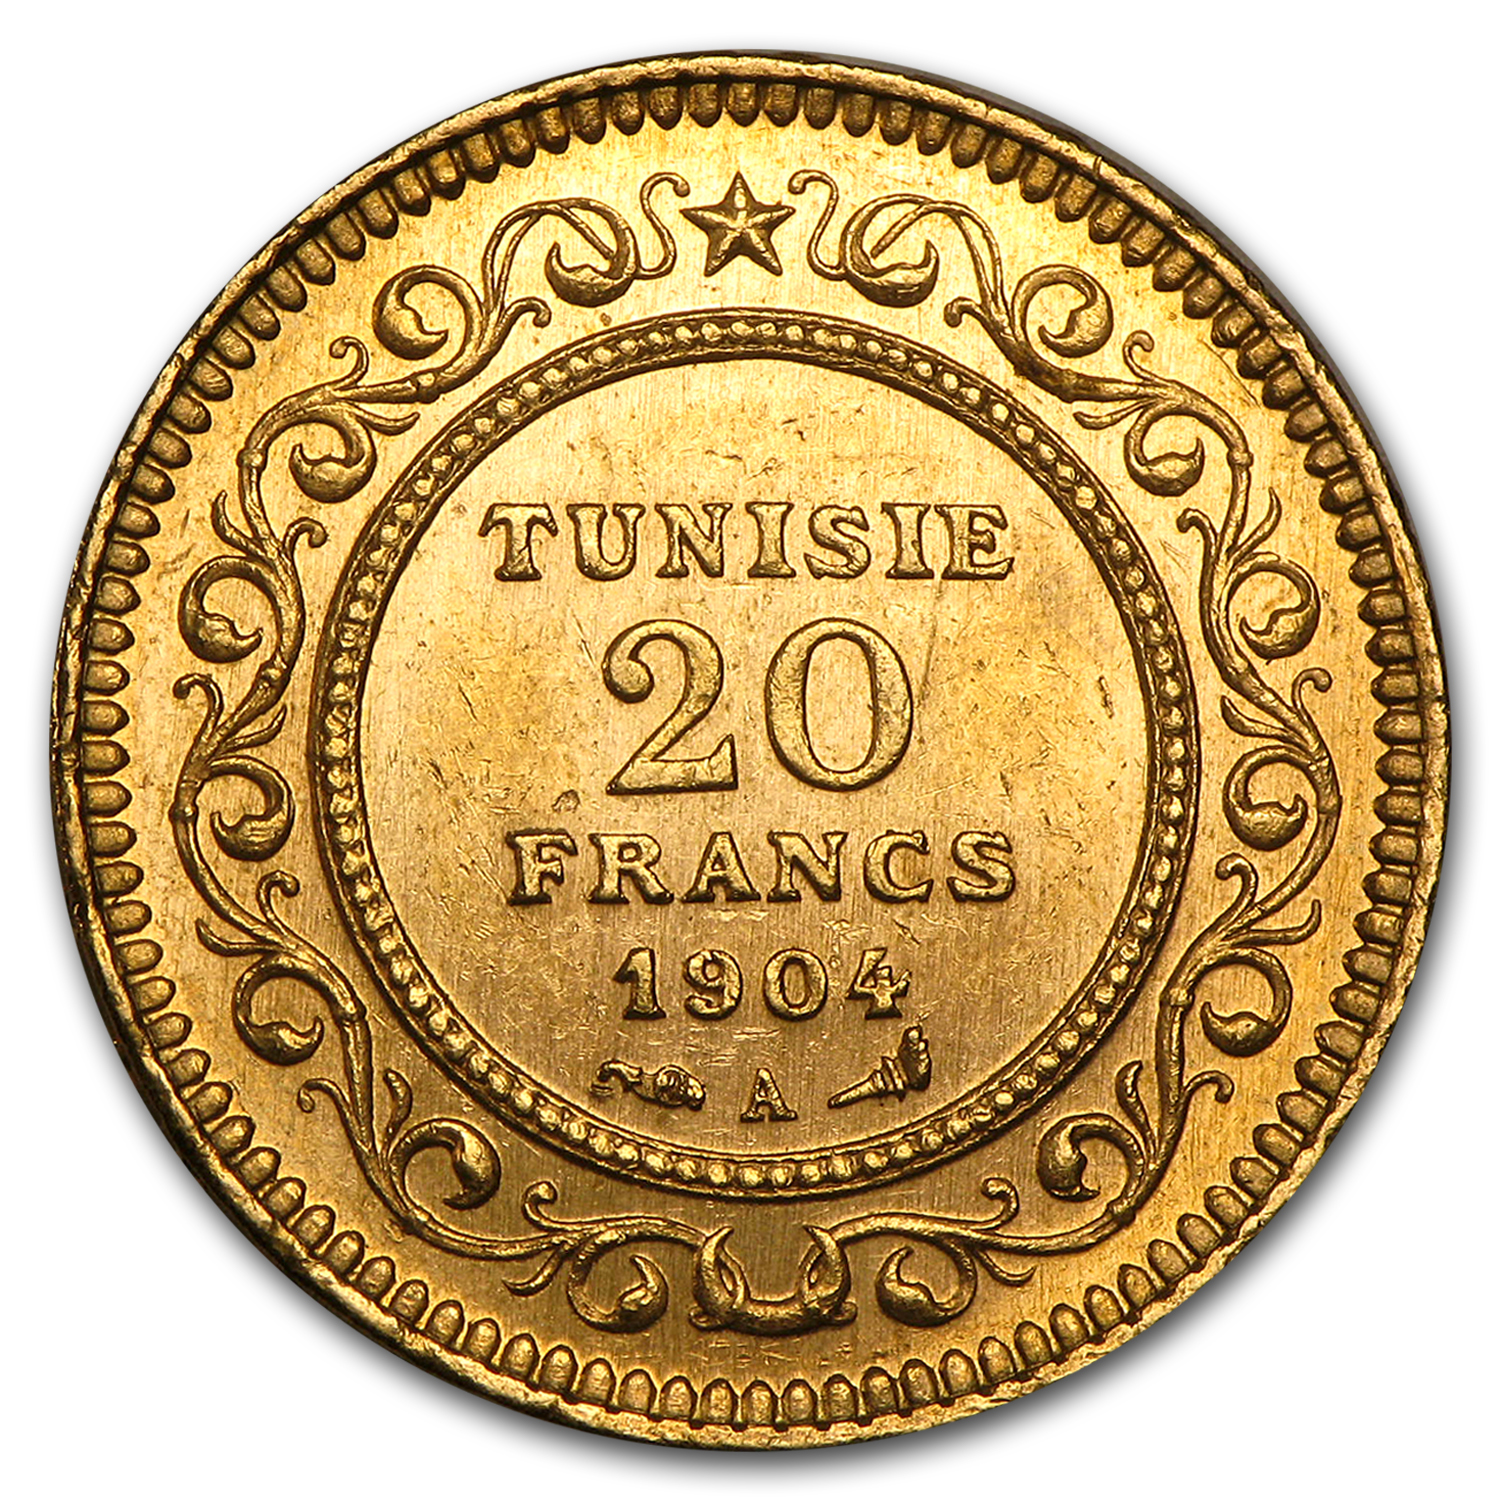 Tunisia 20 Franc Gold (XF or Better) Paris Mint